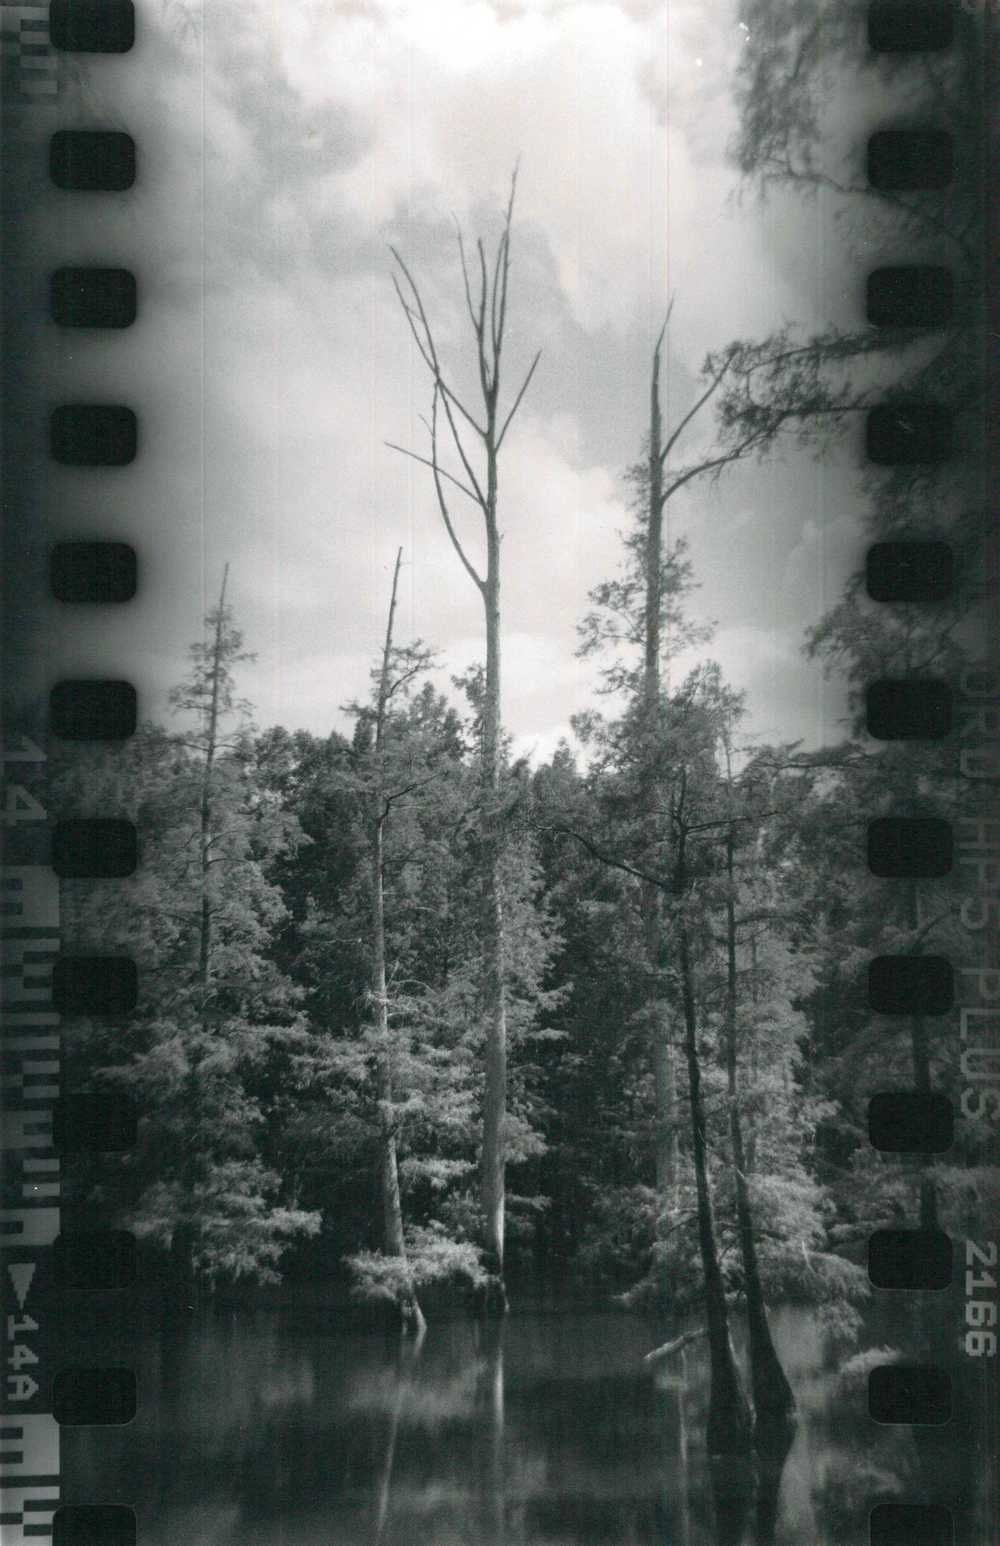 Ilford HP5 Plus film on Ilford silver gelatin paper